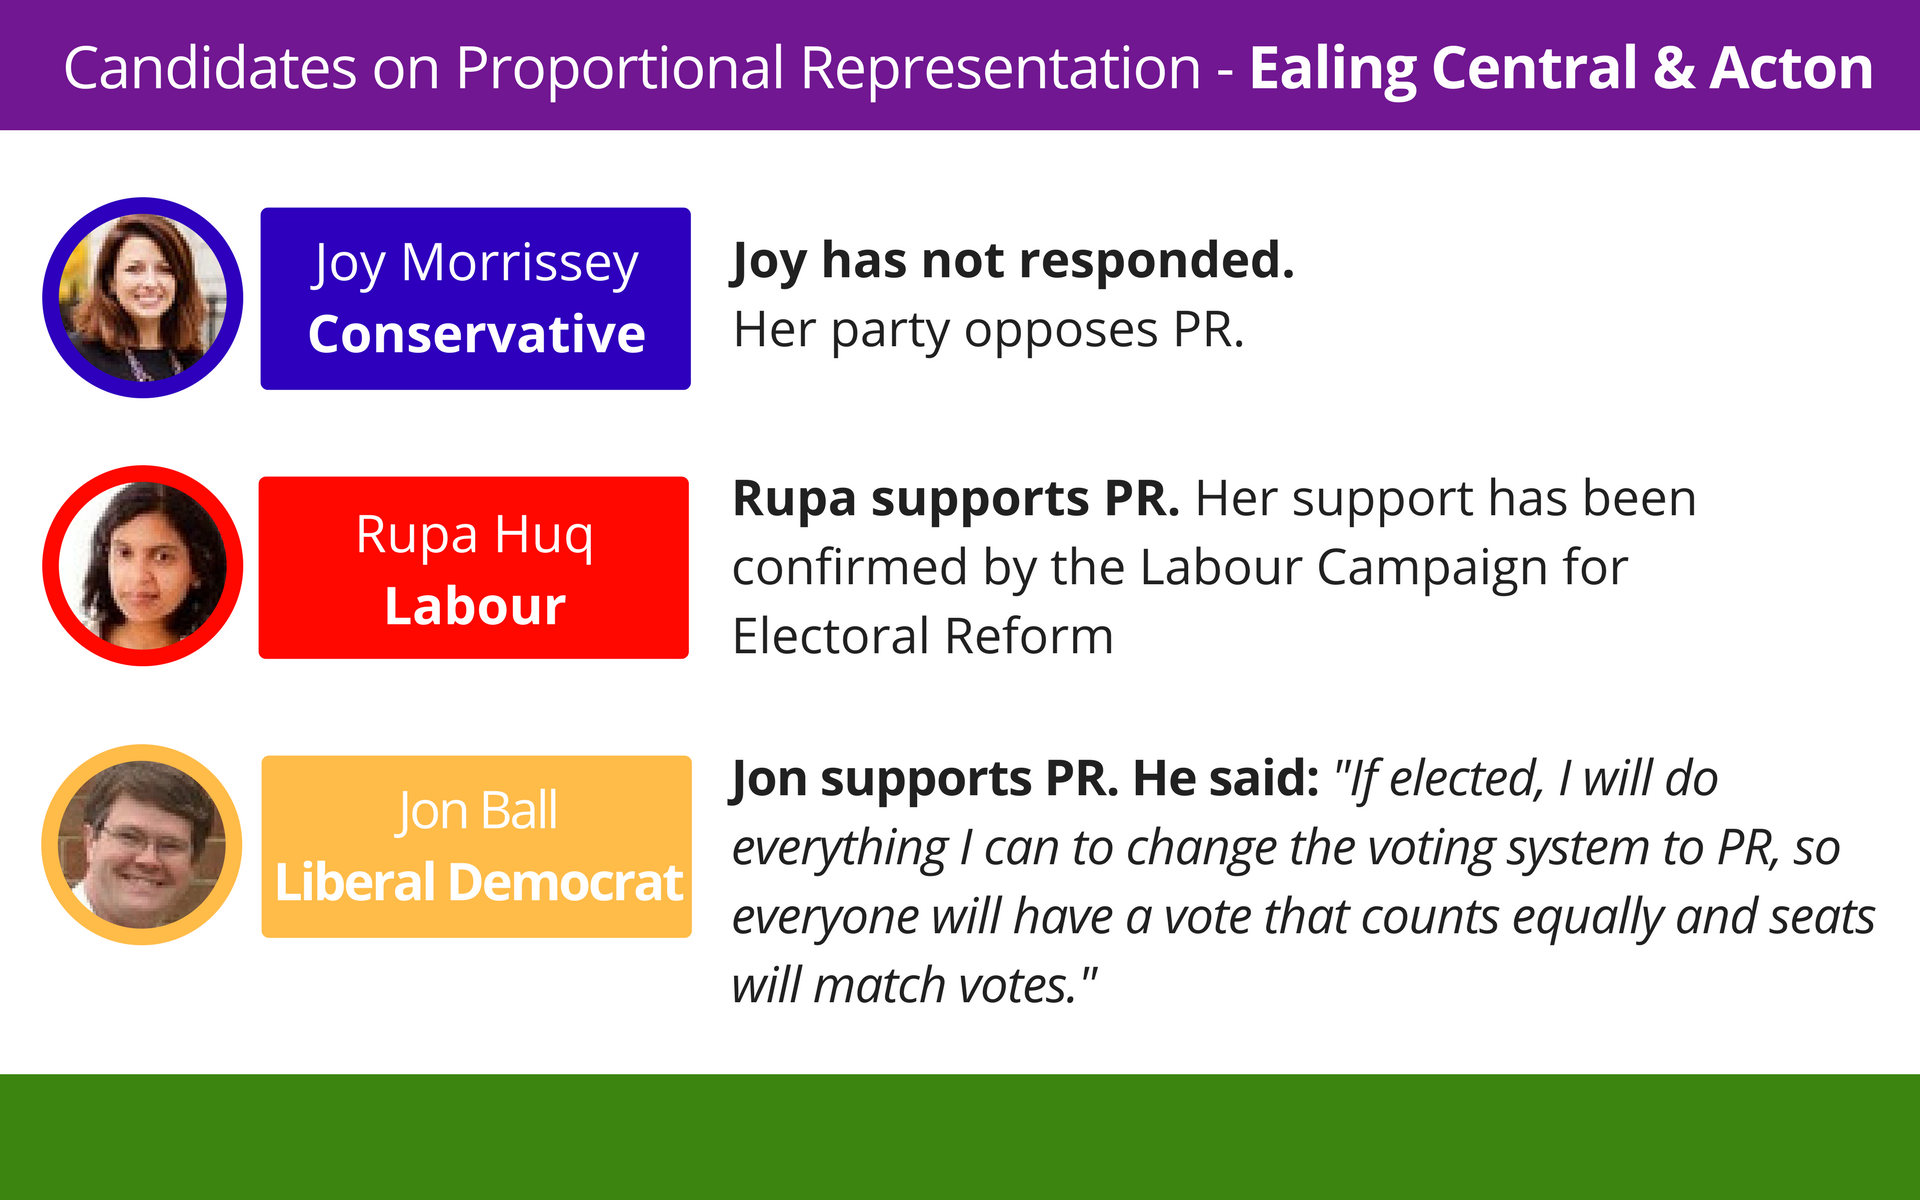 Ealing Central & Acton is an example of how tactical this election has become. In 2015, 9 candidates stood here. In 2017, it's dropped to just three - with both UKIP and the Greens standing down.